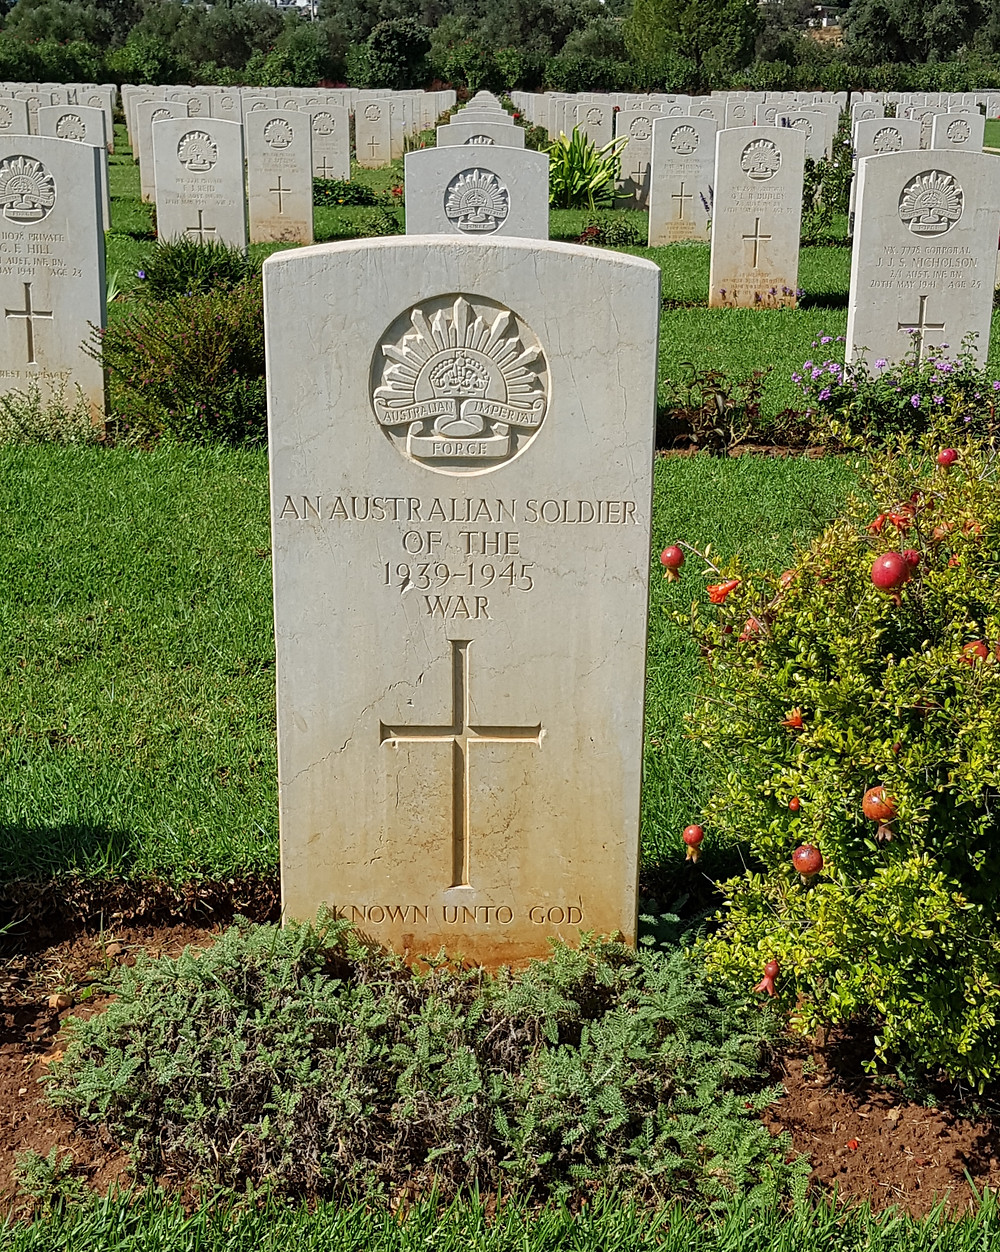 Picture of an Australian soldier's headstone of the 1939-45 war in Souda Bay, Crete. Courtesy of myfamilygenealogist.com